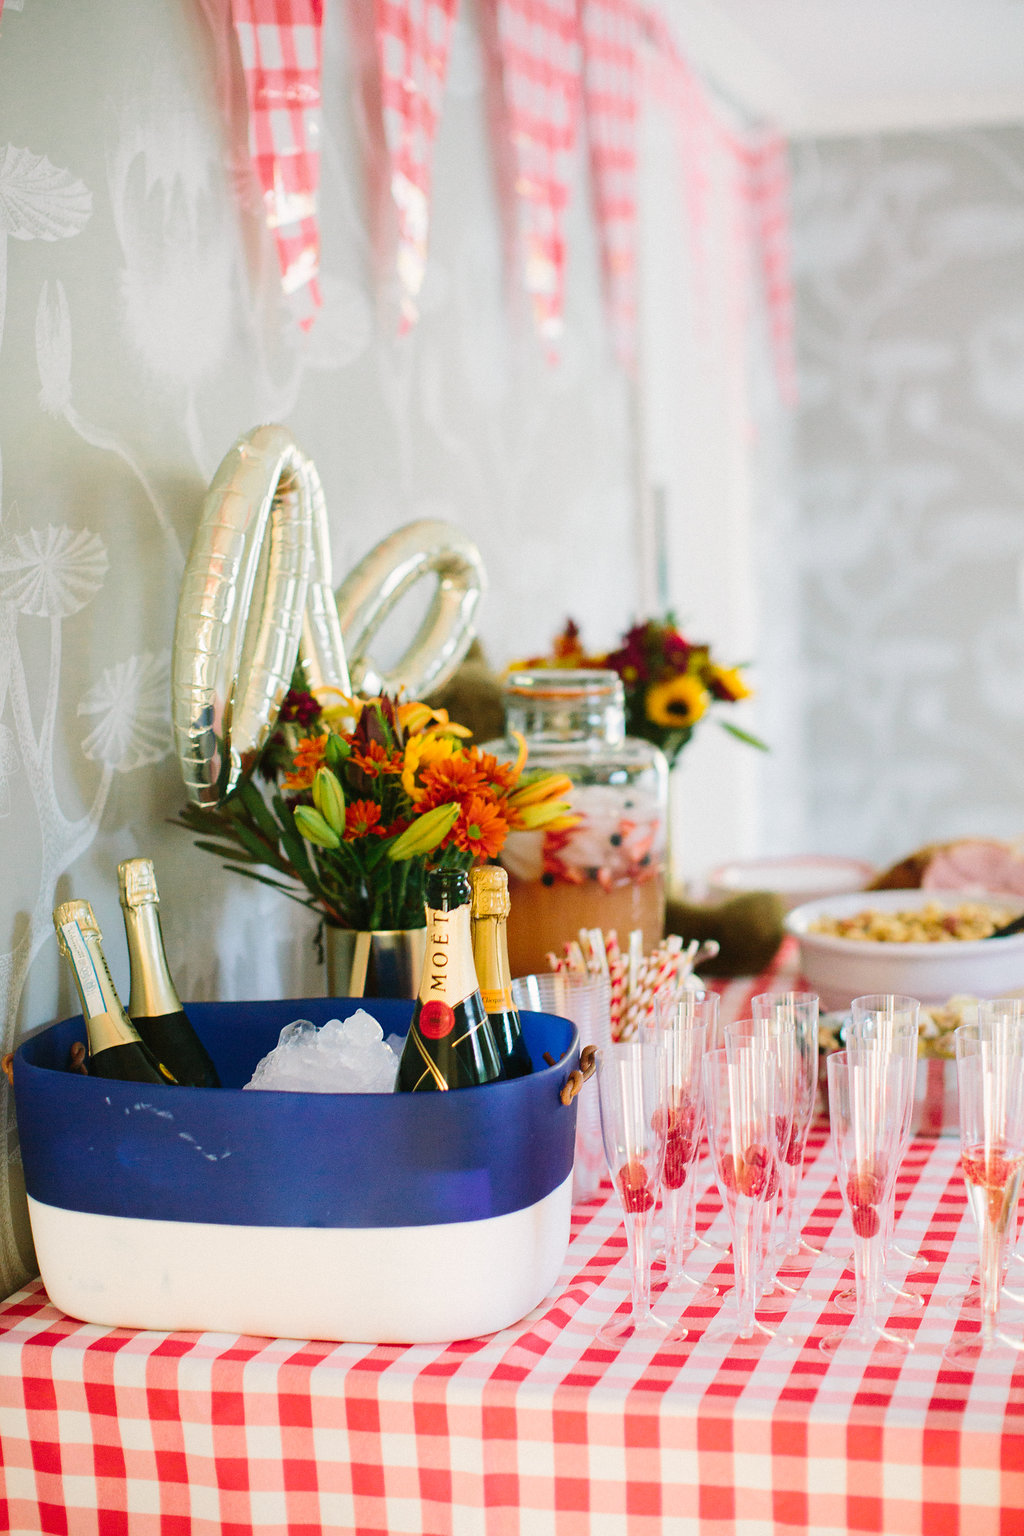 The cocktail setup on the red and white checked buffet for Major Martino's first birthday party with a TEddy bear picnic theme